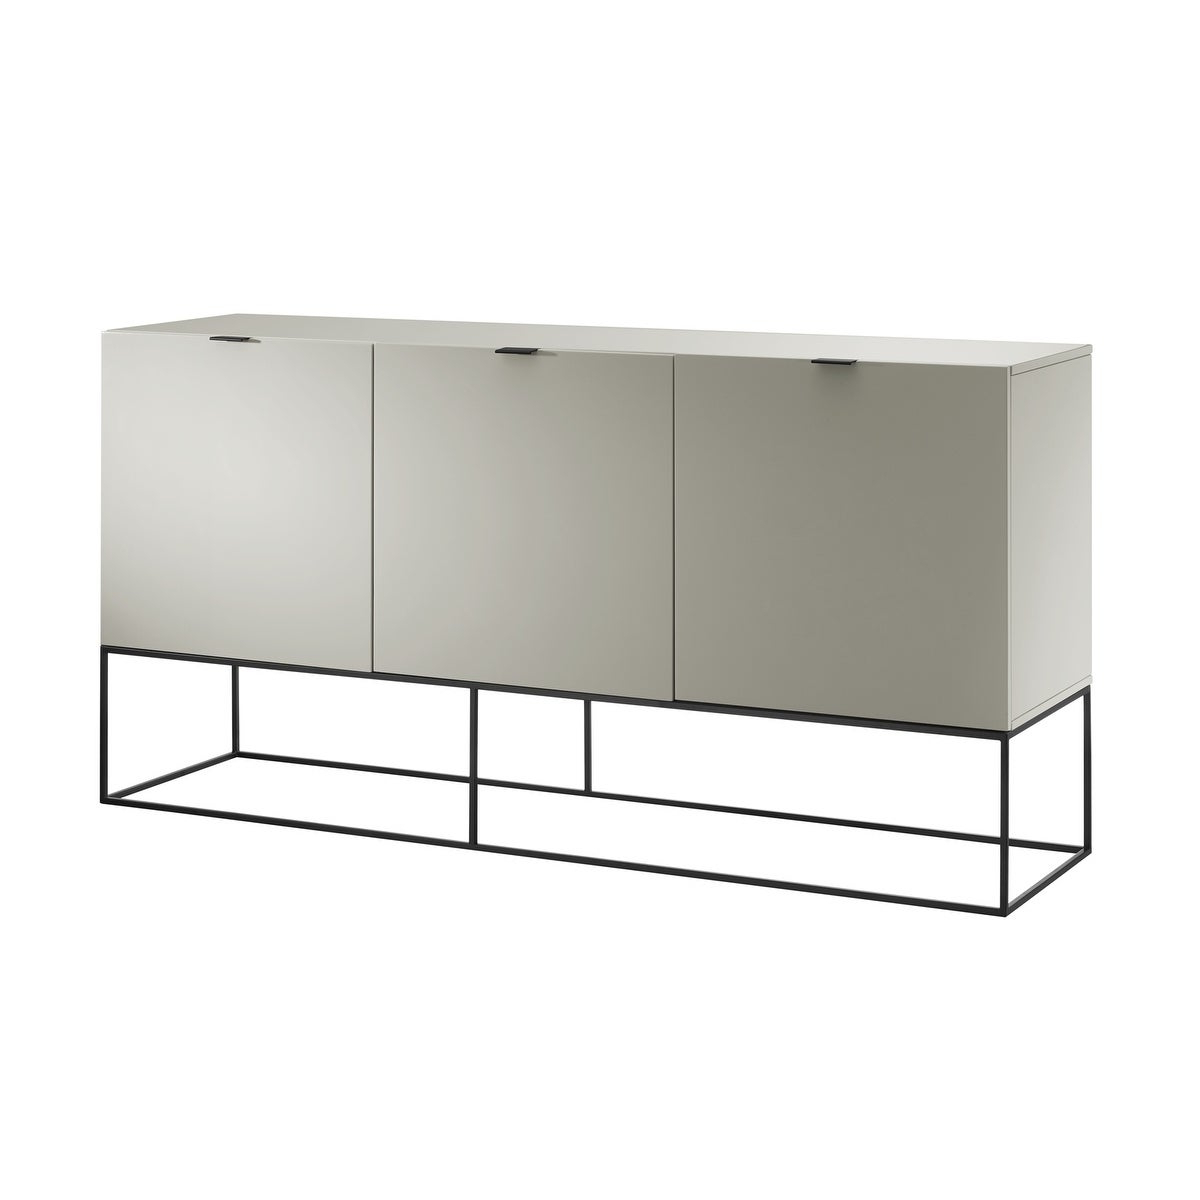 Vizzione High Gloss Light Gray Lacquer Buffetcasabianca Home Throughout White Wood And Chrome Metal High Gloss Buffets (View 9 of 20)